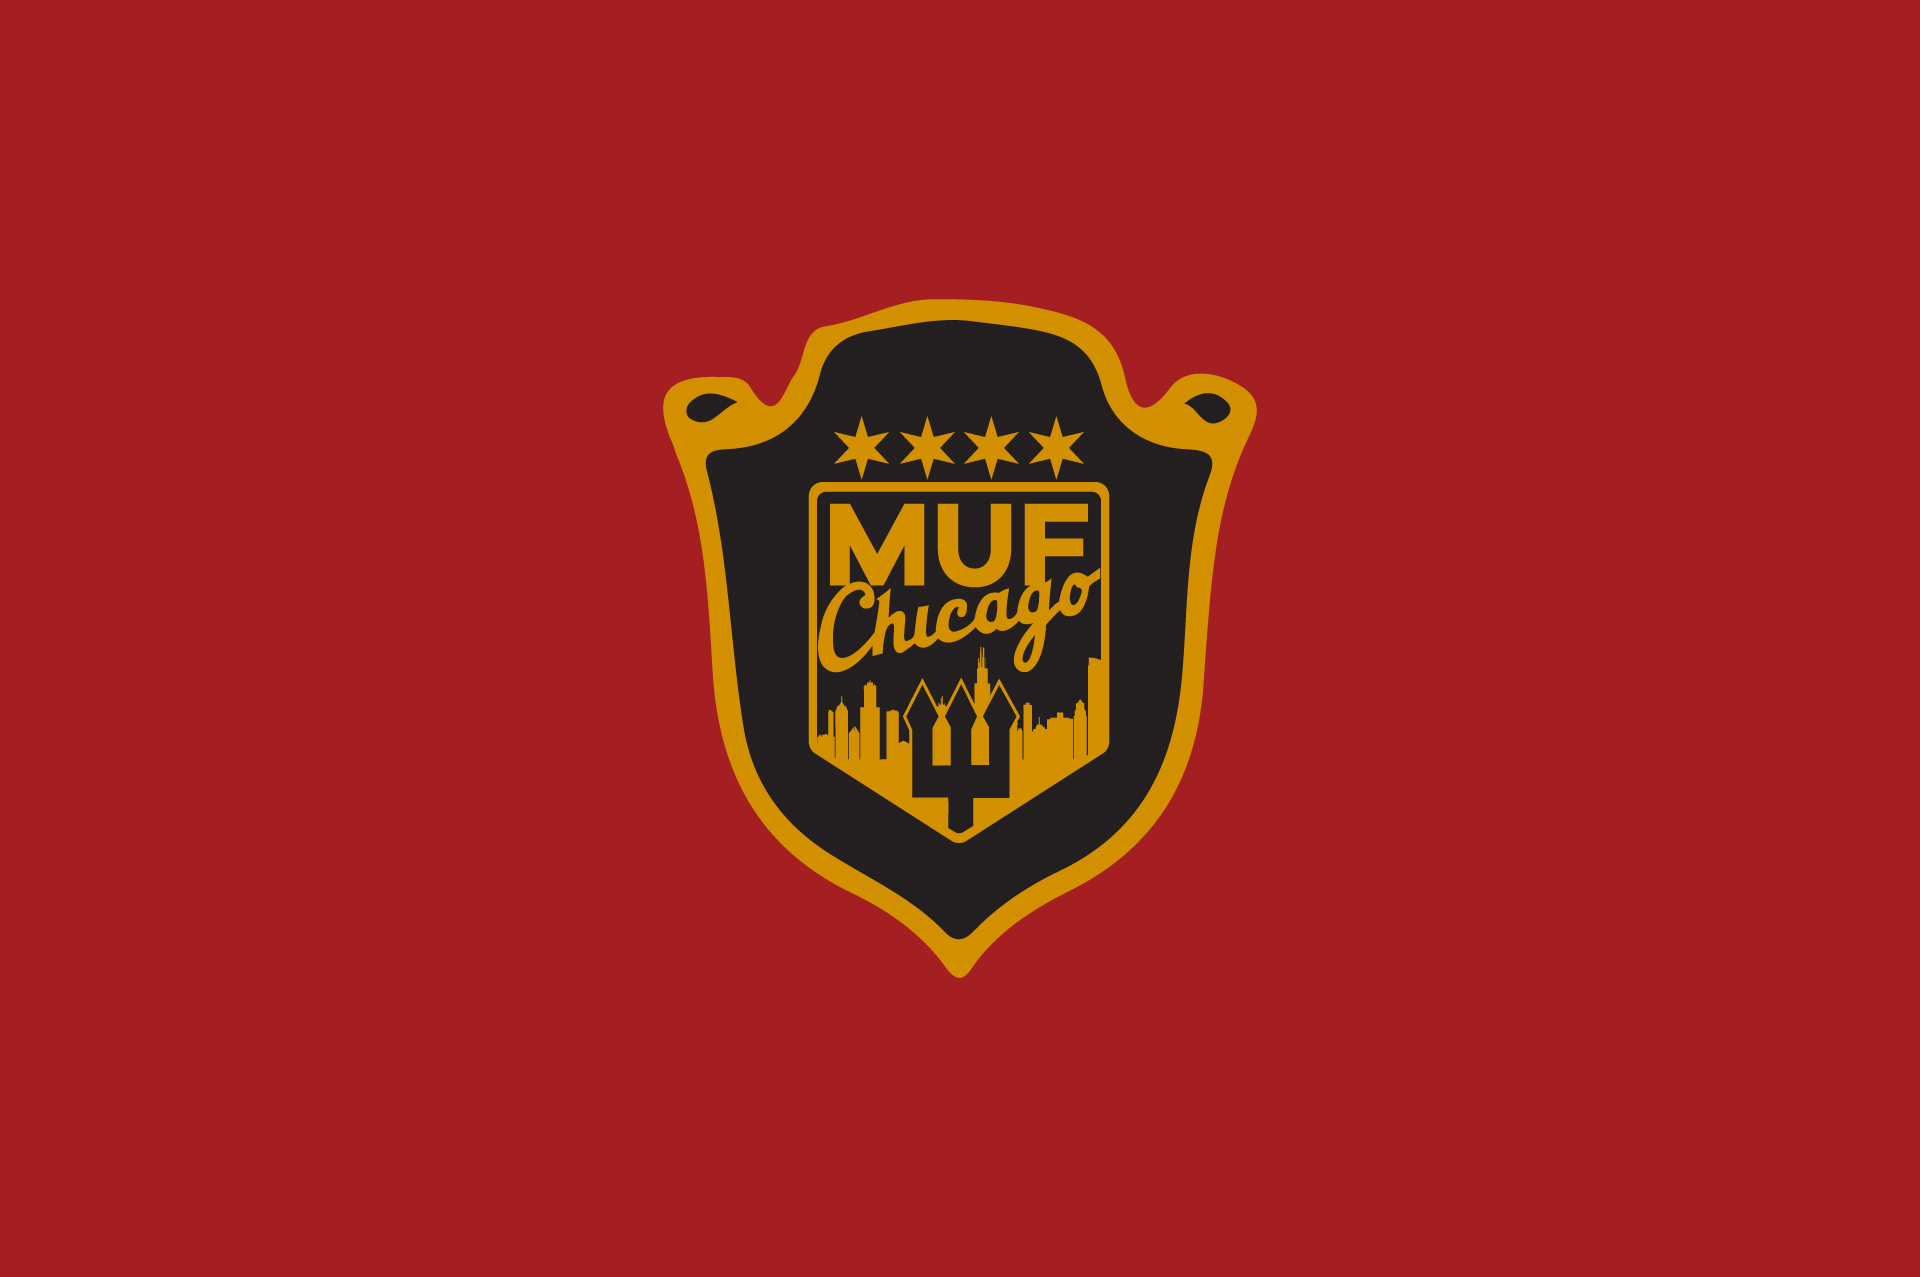 Please find us on Facebook at MUFChicago